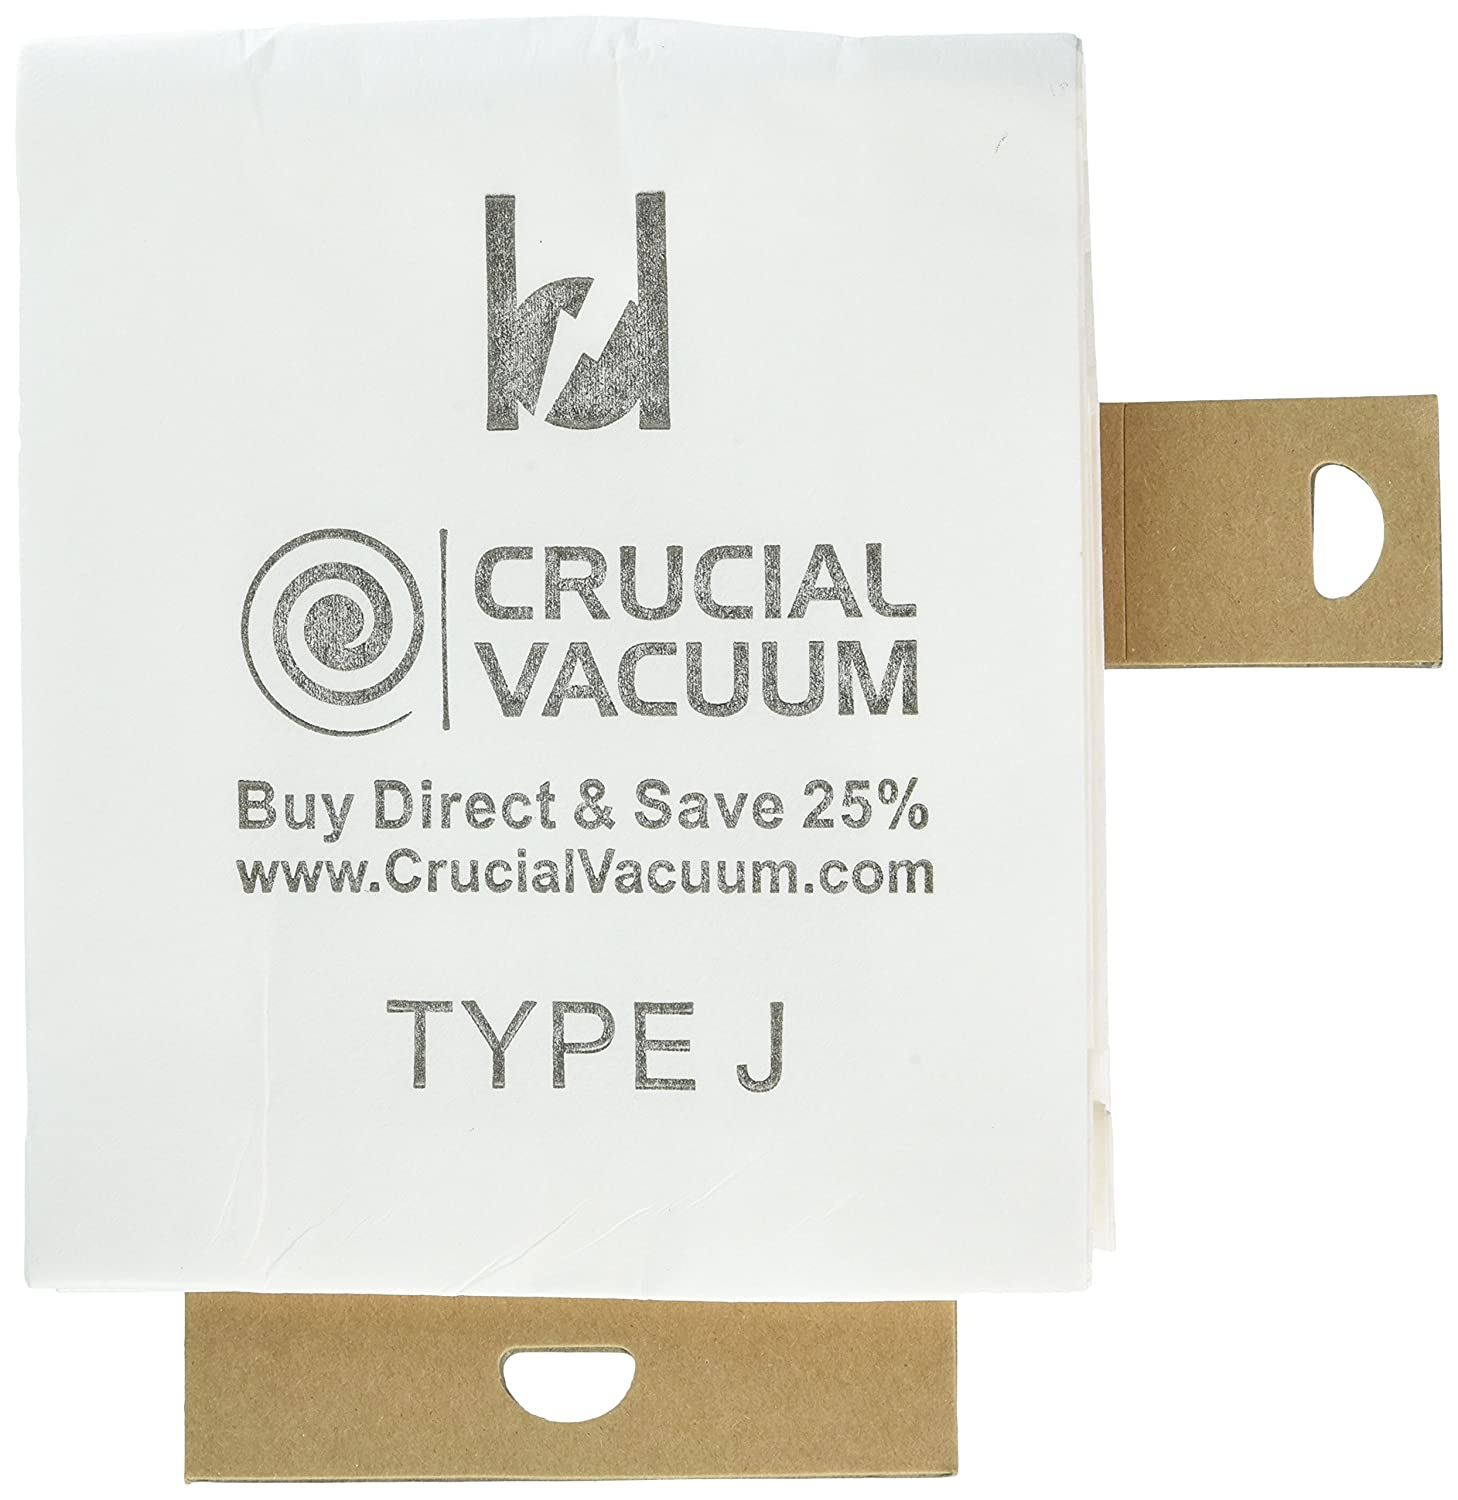 Think Crucial 3 Replacements for Eureka J Bags Fit Everpure Uprights, Compatible With Part # 61515 & 61995